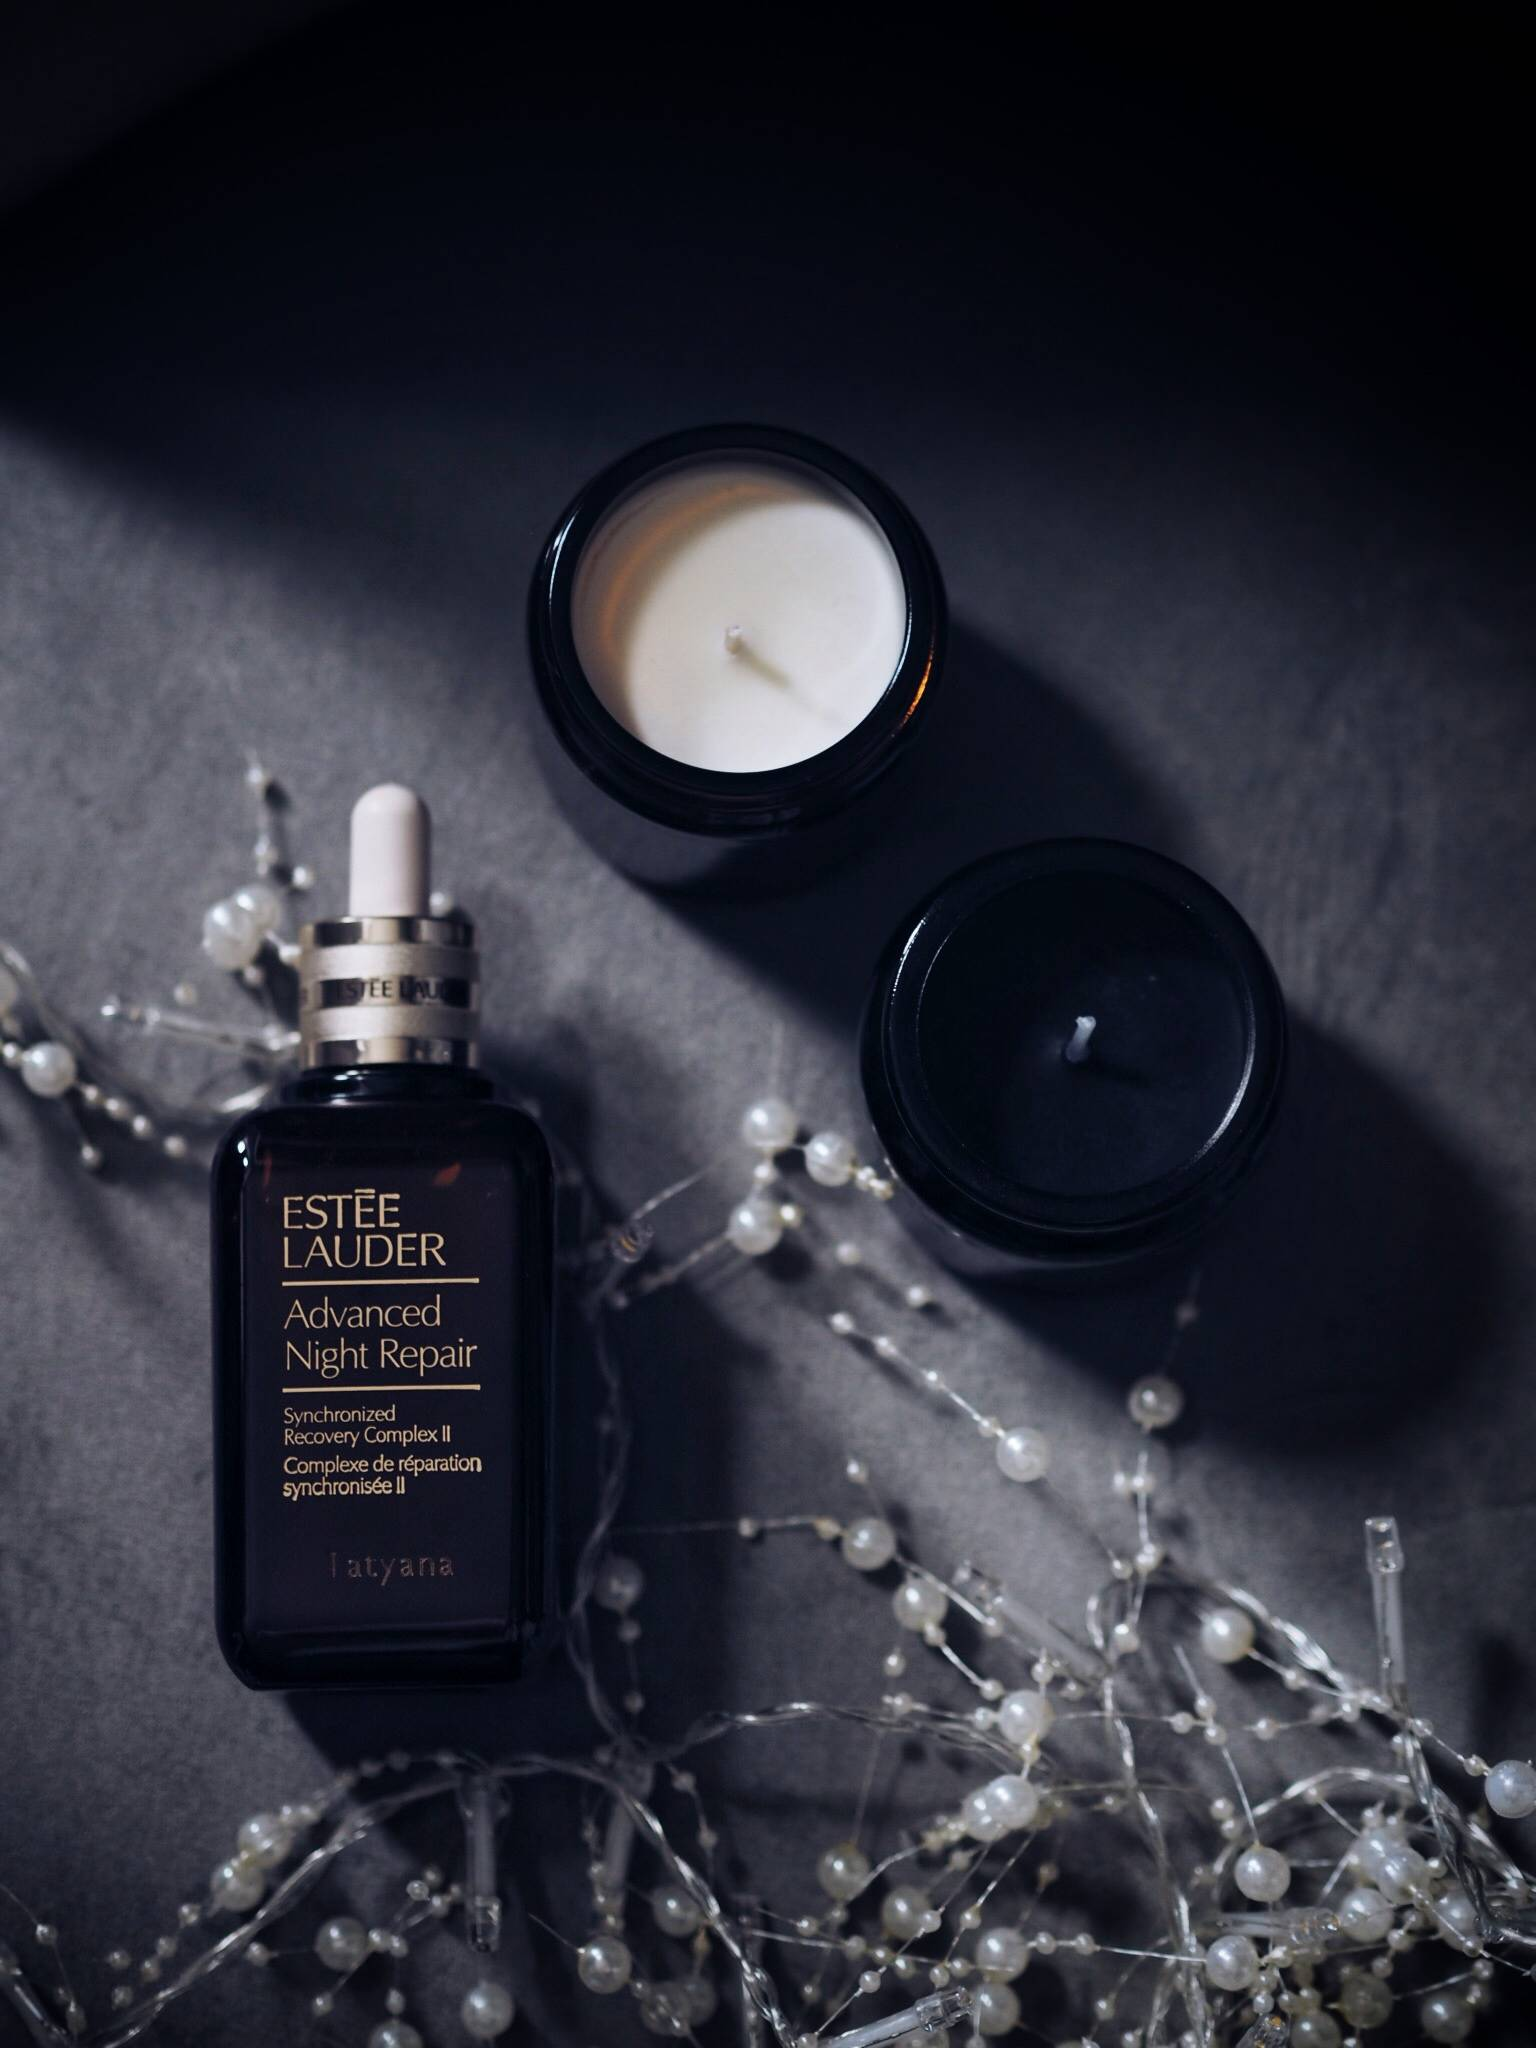 BEAUTY-BLOGGER-SCOTLAND-GLASGOW-ESTEE-LAUDER-DIOR-BY-LAFOTKA-STYLE-BLOGGER